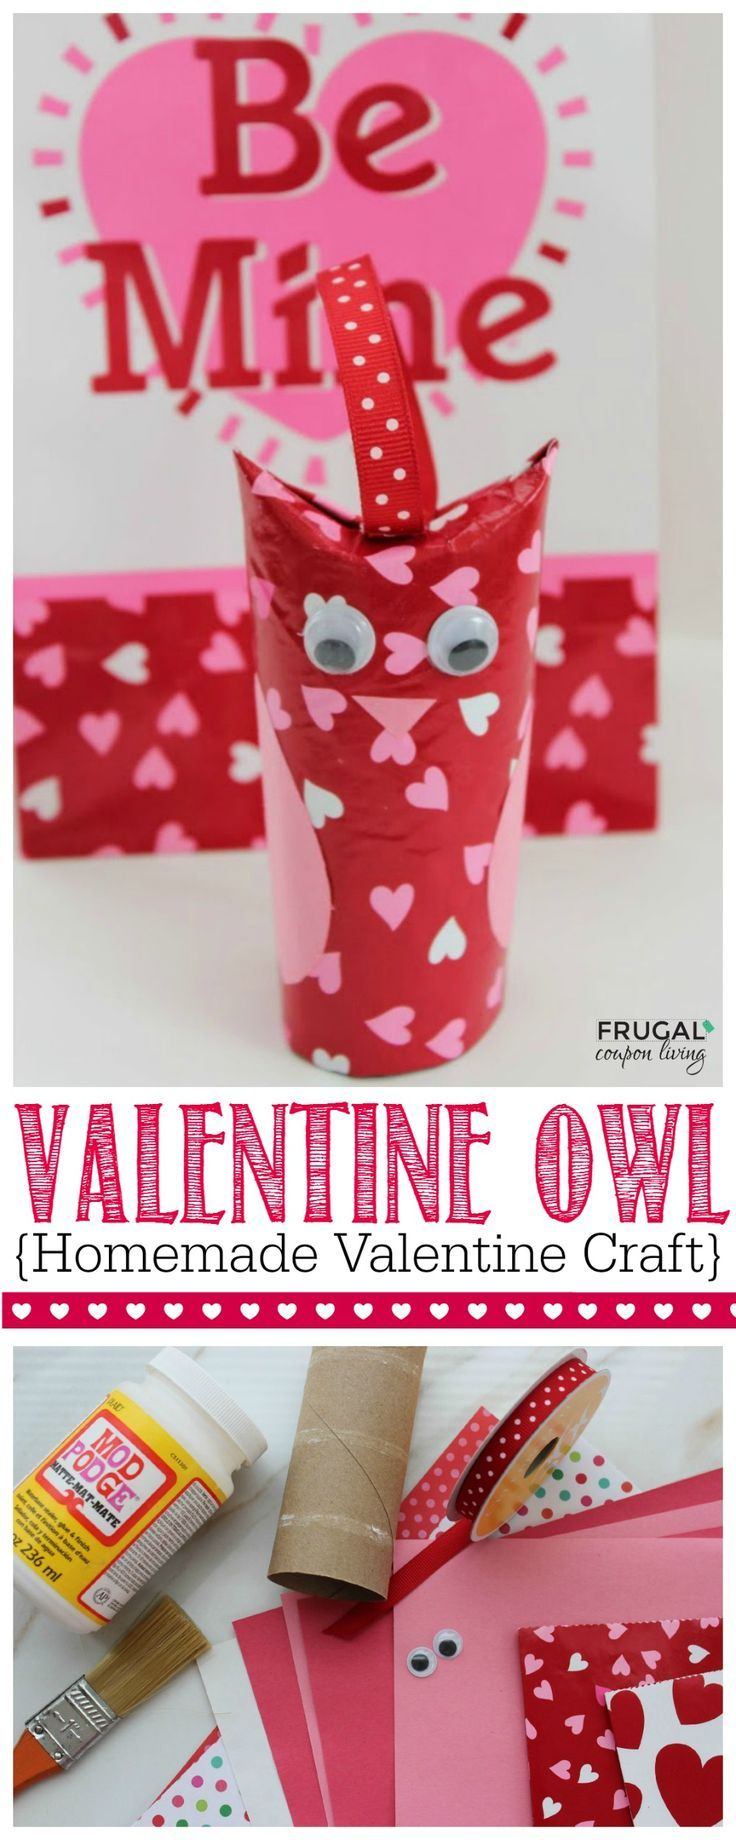 Homemade Valentines Crafts